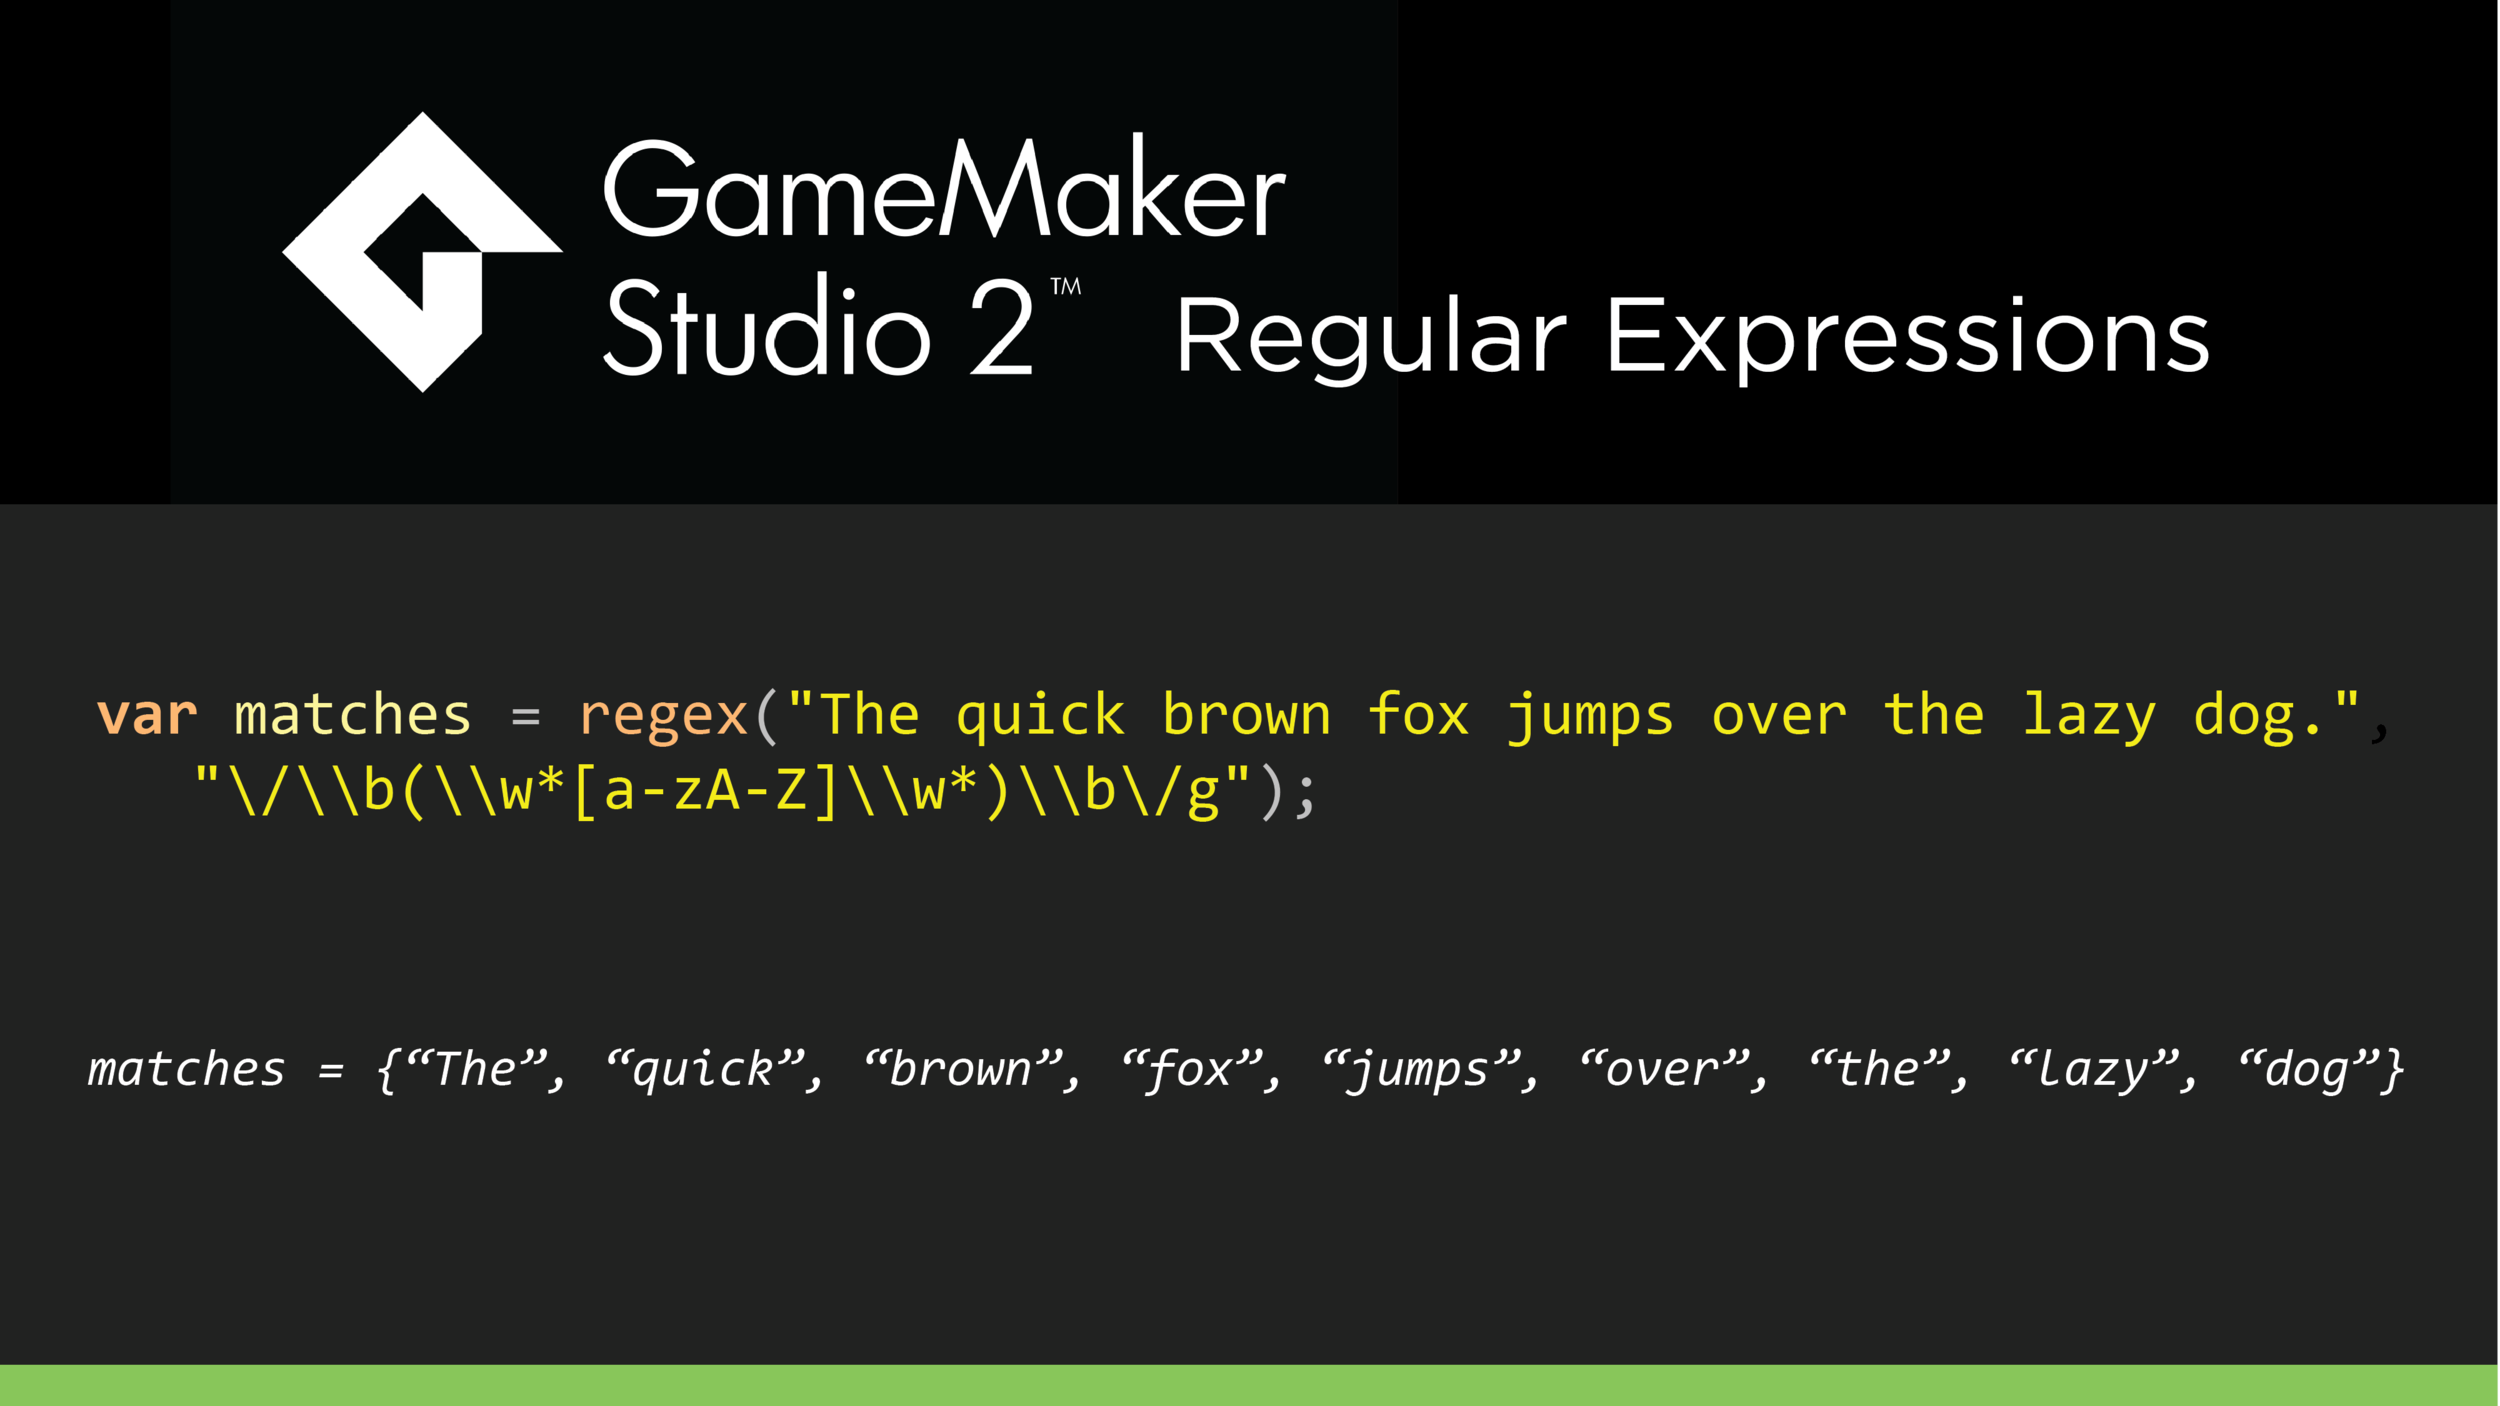 gamemaker_regular_expressions-01.png